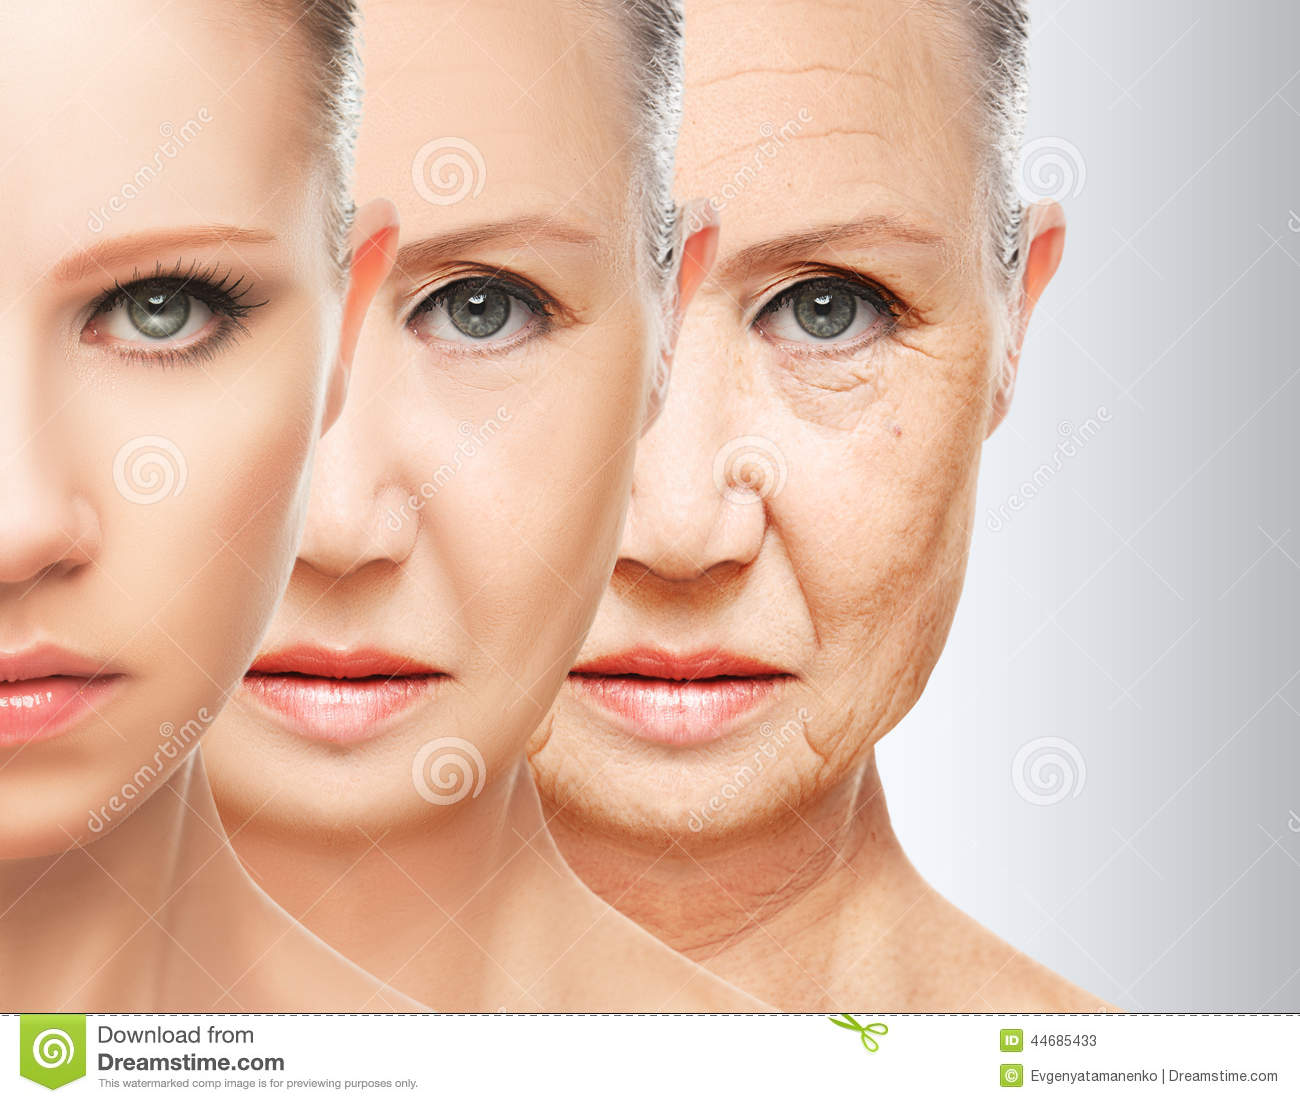 31,937 Anti Aging Photos - Free & Royalty-Free Stock Photos from Dreamstime